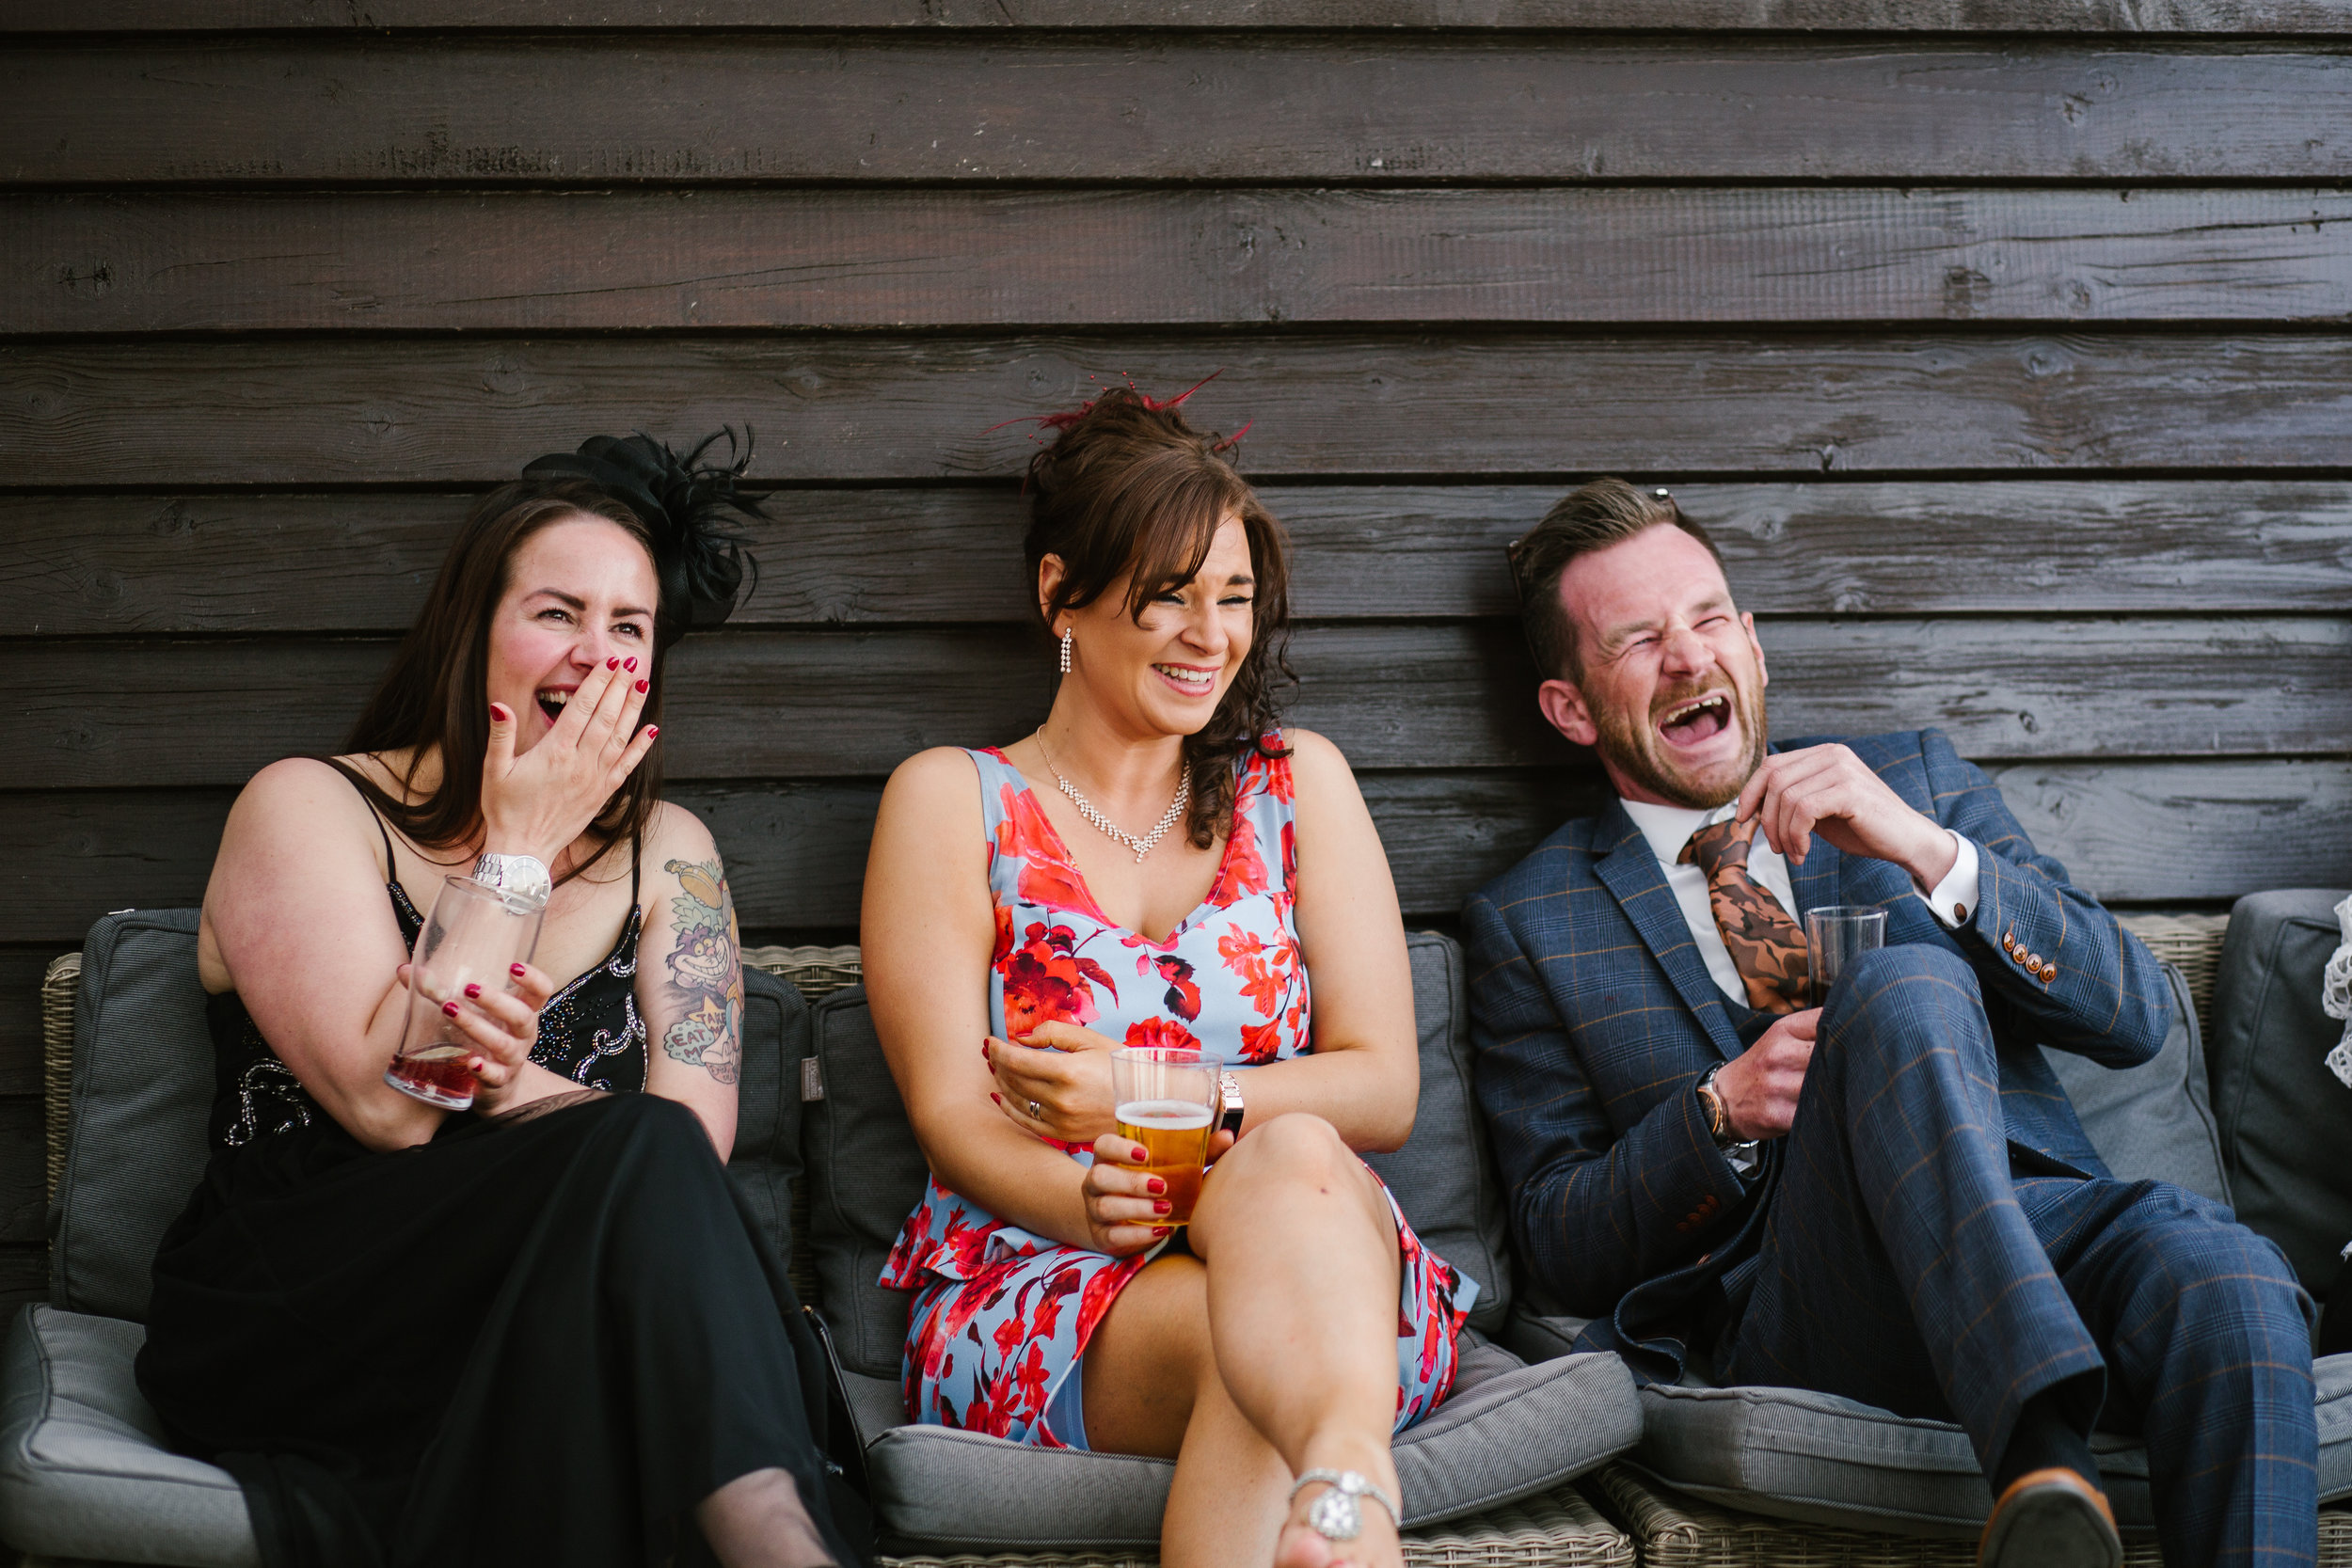 wedding guests laughing together while they have a drink on the patio at the boat house